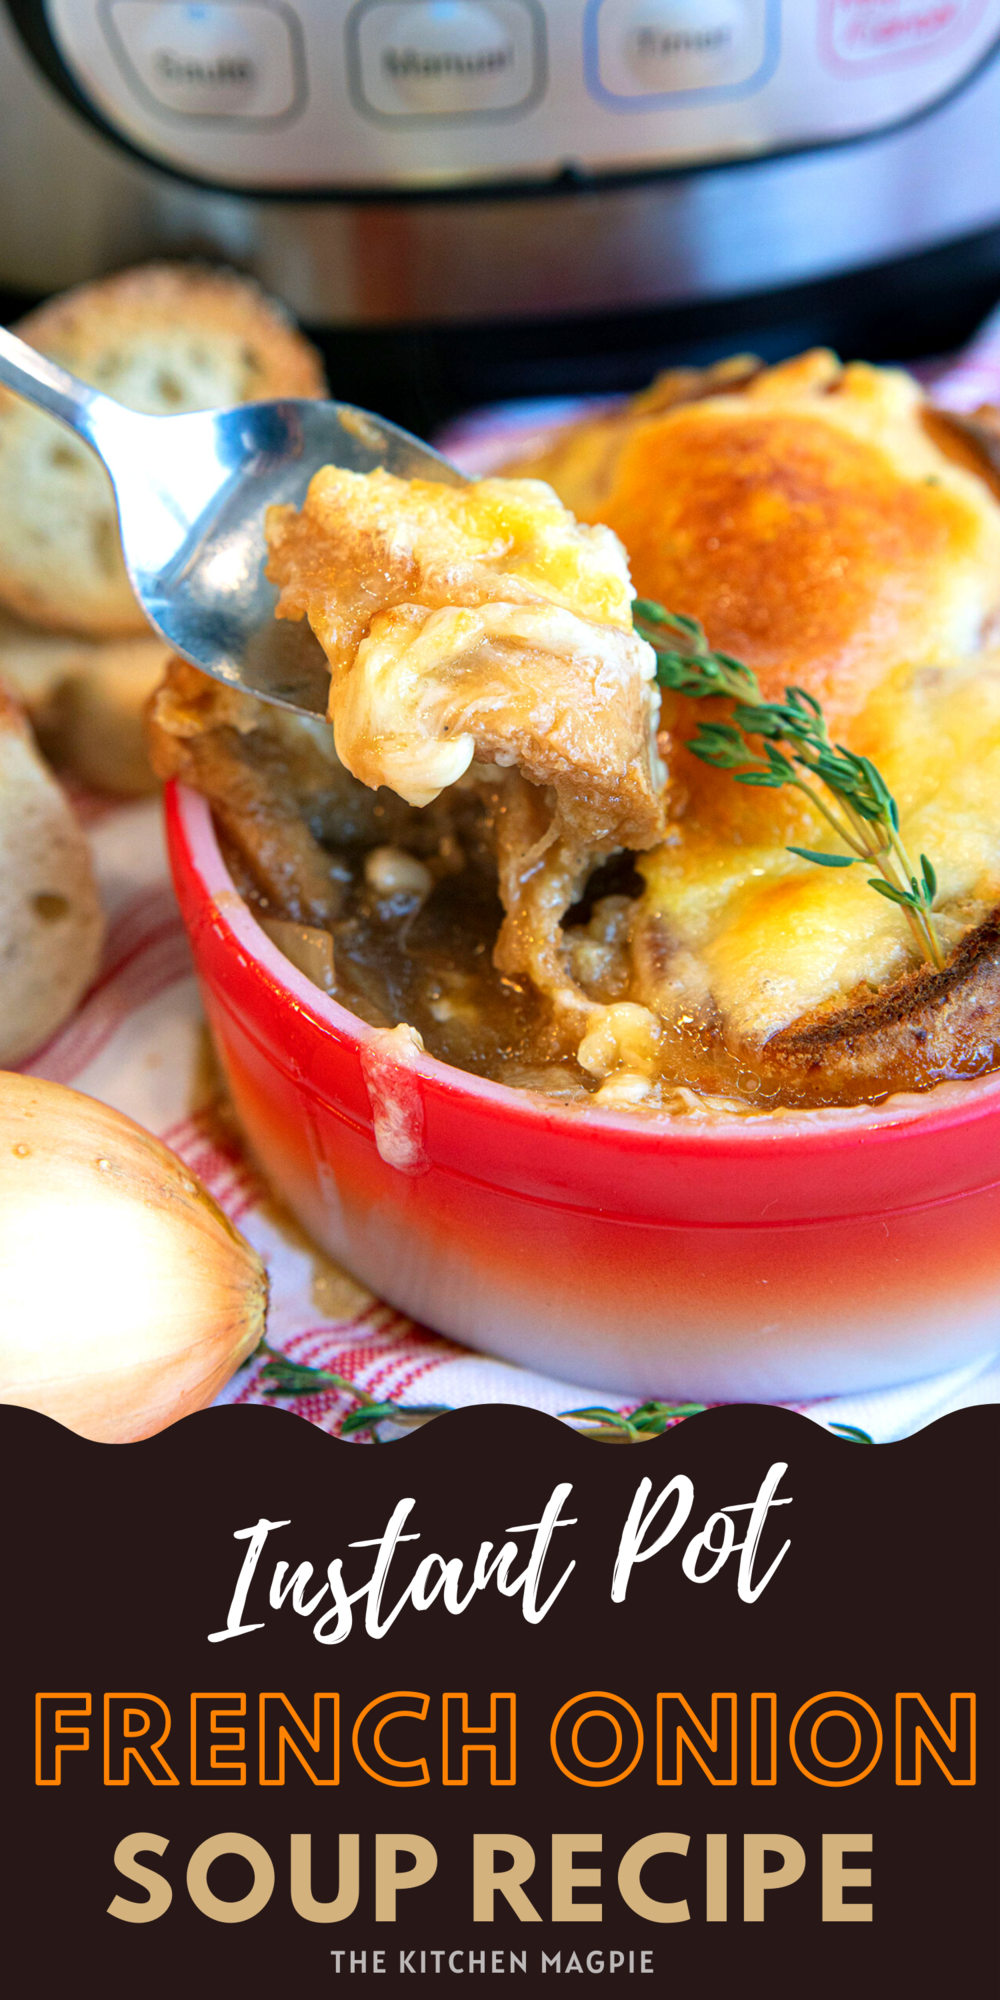 French onion soup made in your Instant Pot! Sweet caramelized onions in a rich beef stock, all topped off with a baguette and melted cheese!